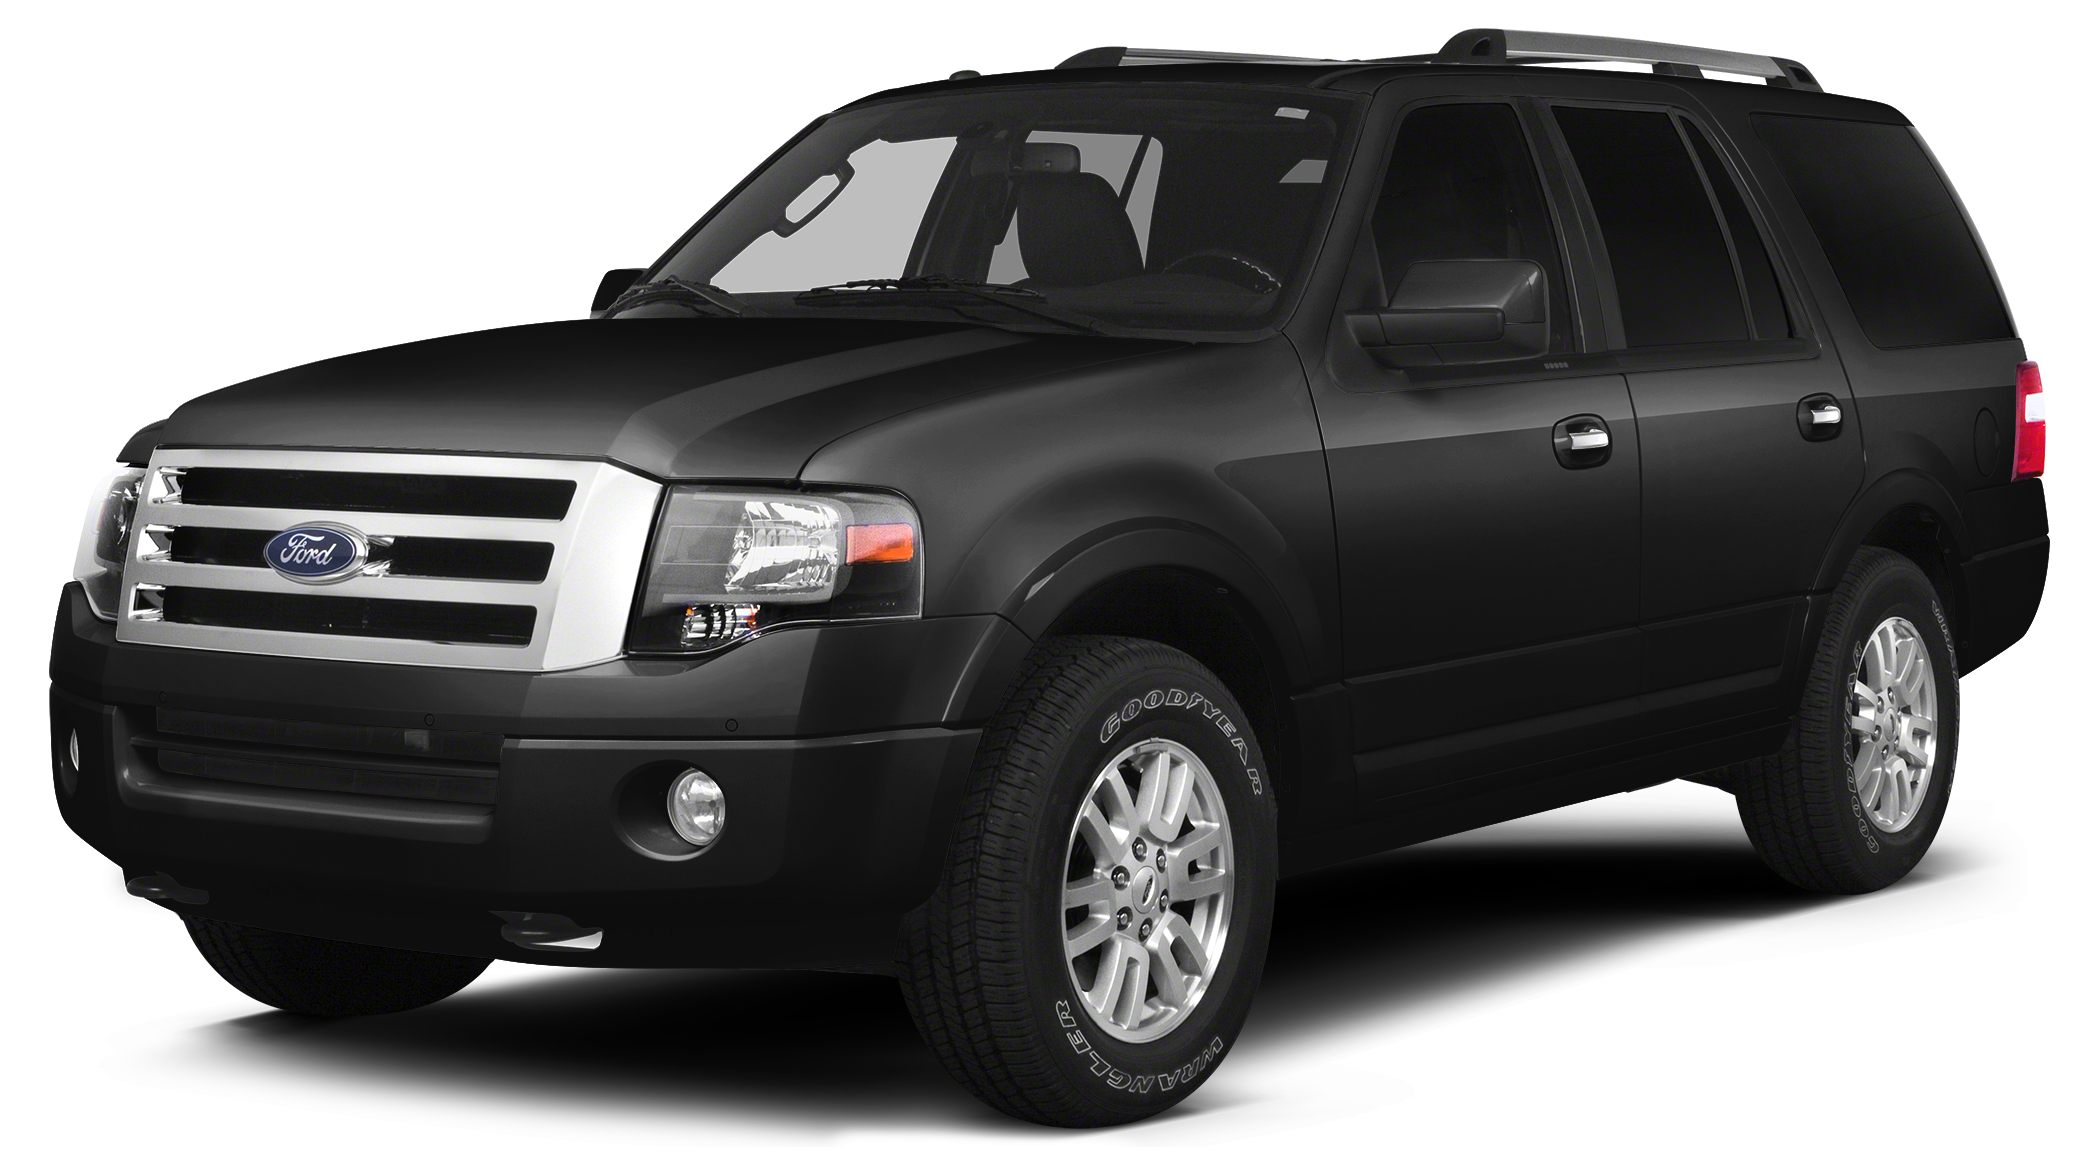 2014 Ford Expedition Limited This is the vehicle for you if youre looking to get great gas mileag